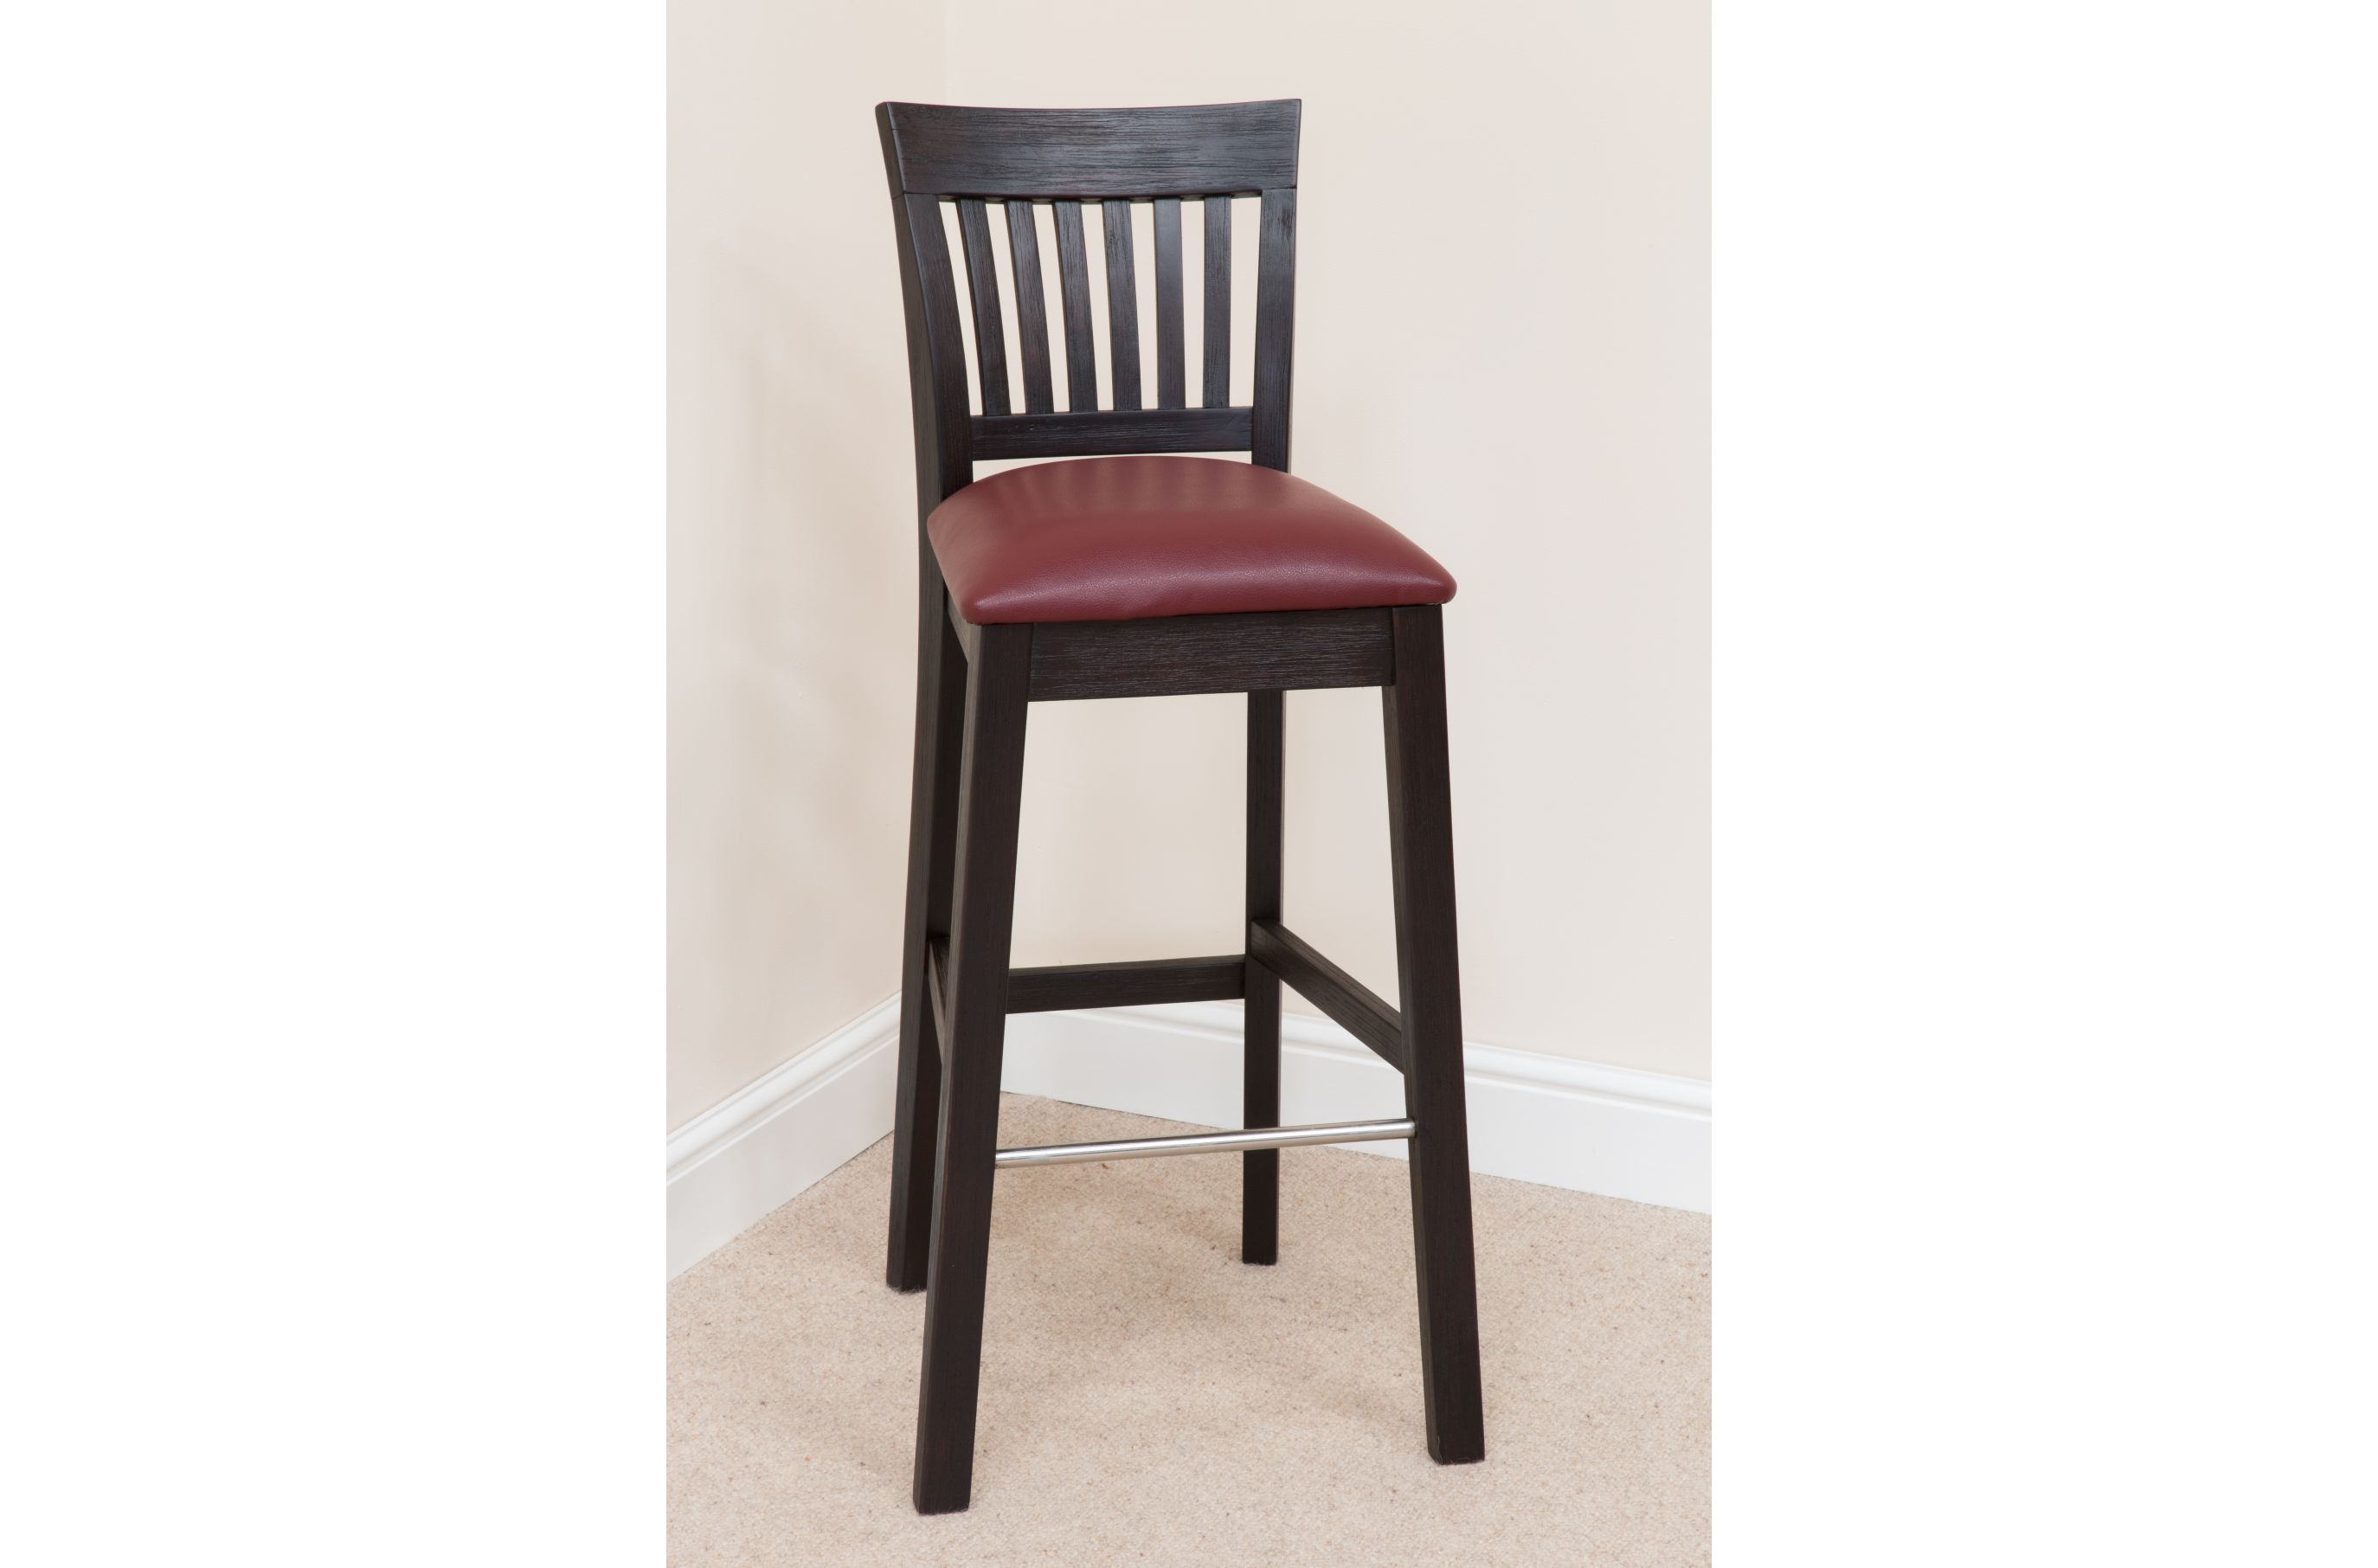 Bar Stools 32 Inch Seat Height Are Becoming More And Por Because Of Their Design As Well The Fash